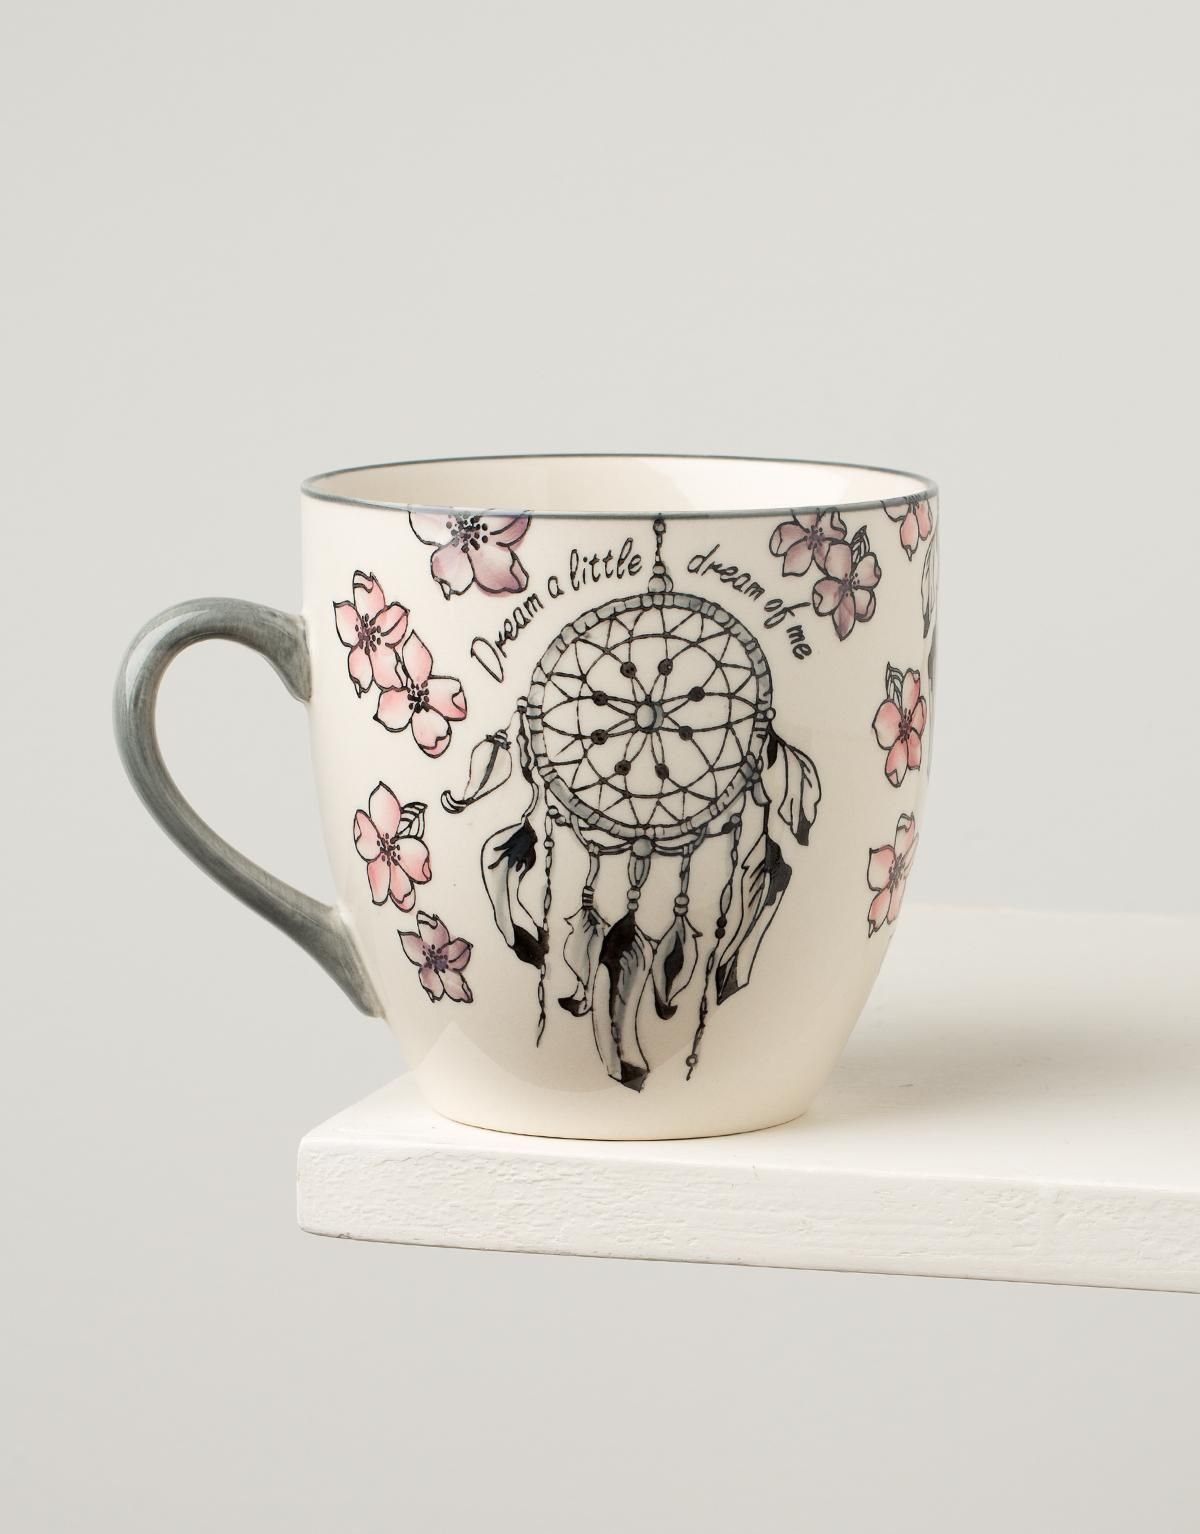 Pin By 𝕬𝖓𝖓𝖒𝖆𝖗𝖎𝖊 On Un Cafe S Il Vous Plait Painted Mugs Dream Catcher Painting Pottery Painting